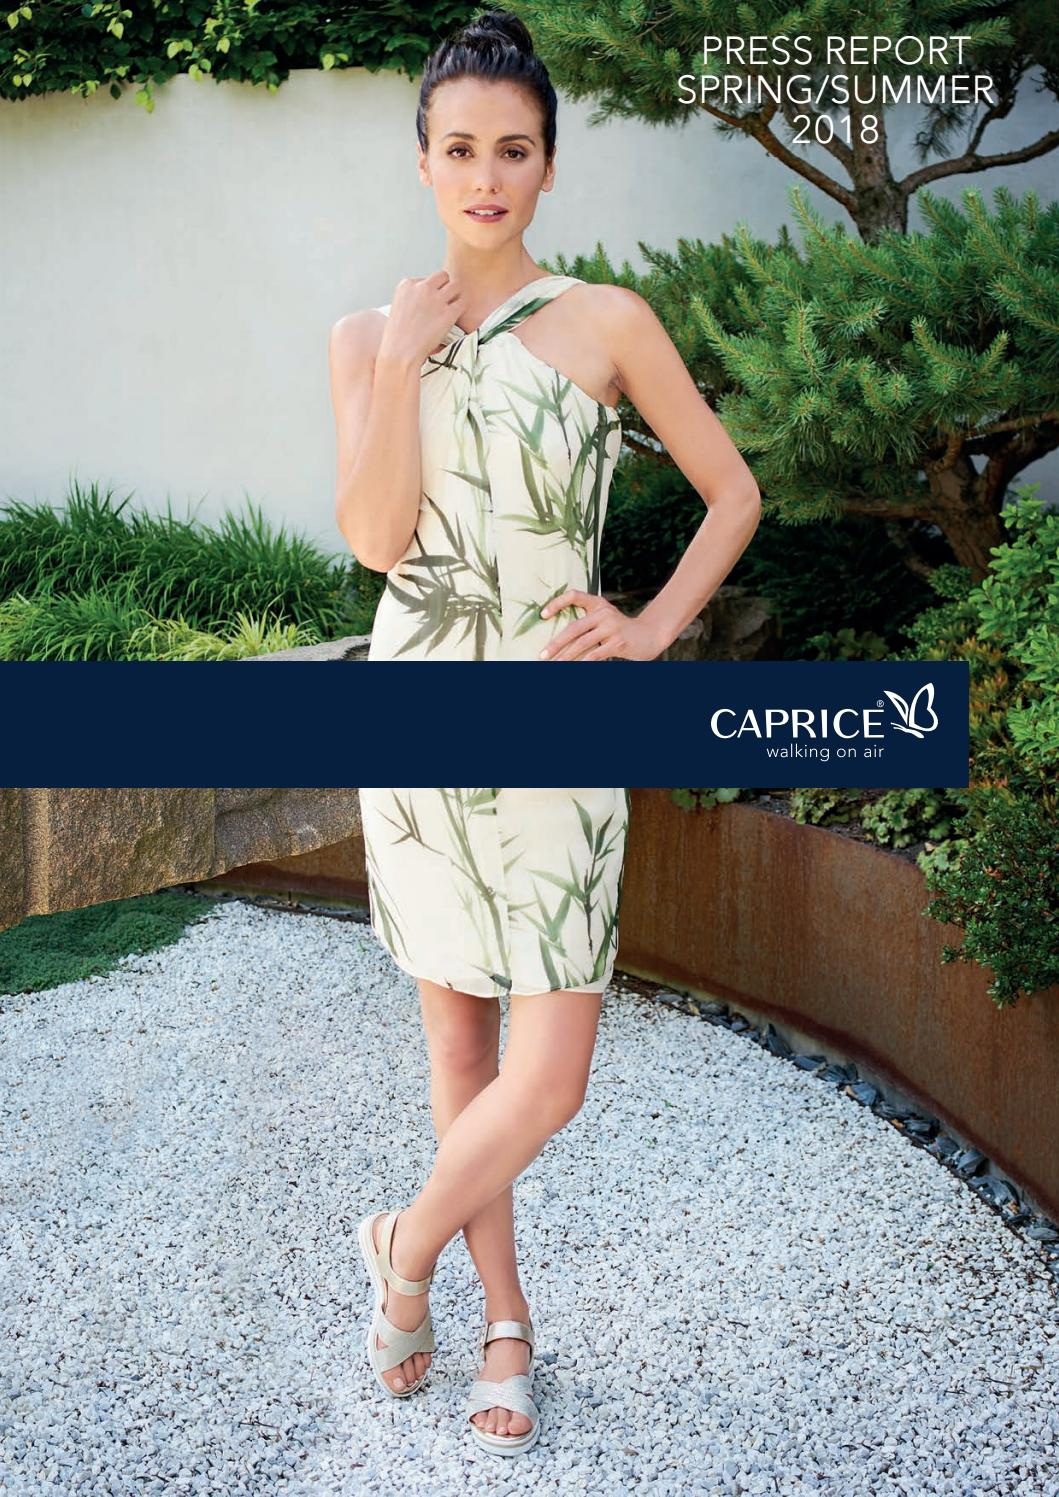 new product 75c47 5c069 Caprice SS18 Collection Report by CIM Online LTD - issuu